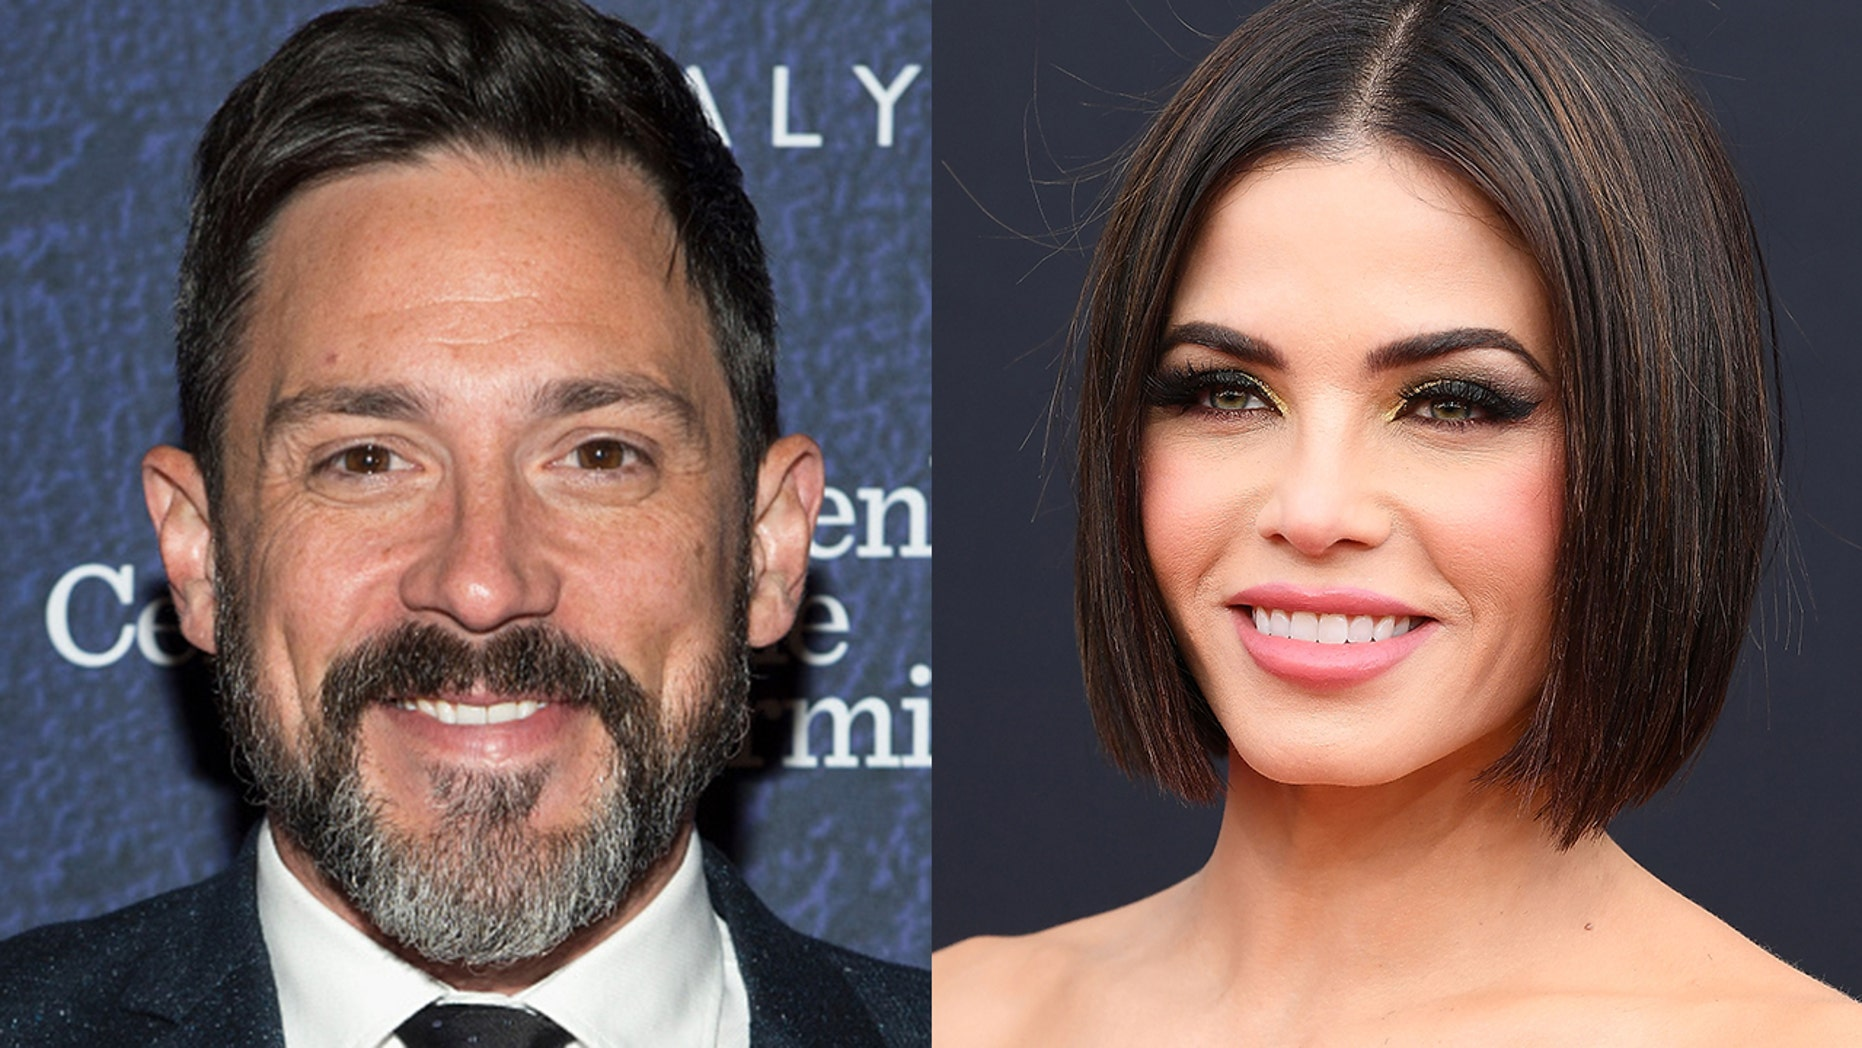 Jenna Dewan has moved on from her exChanning Tatum and is reported dating Tony-winner Steve Kazee.